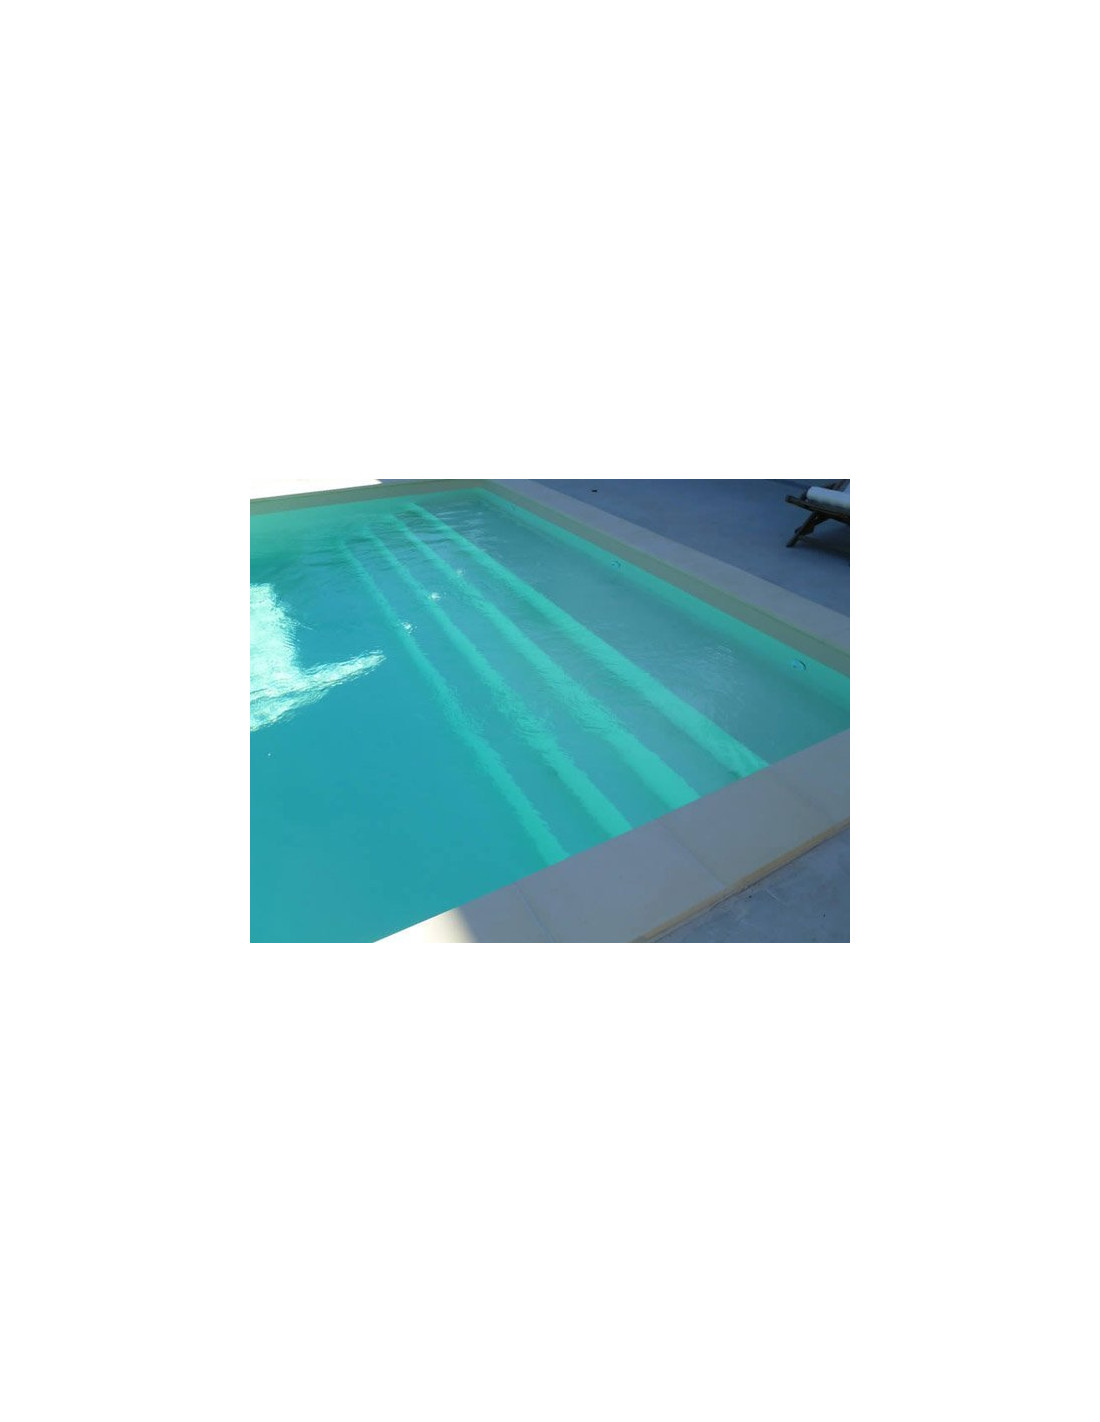 Kit piscine enterr e avec escalier modulo for Piscine kit enterree